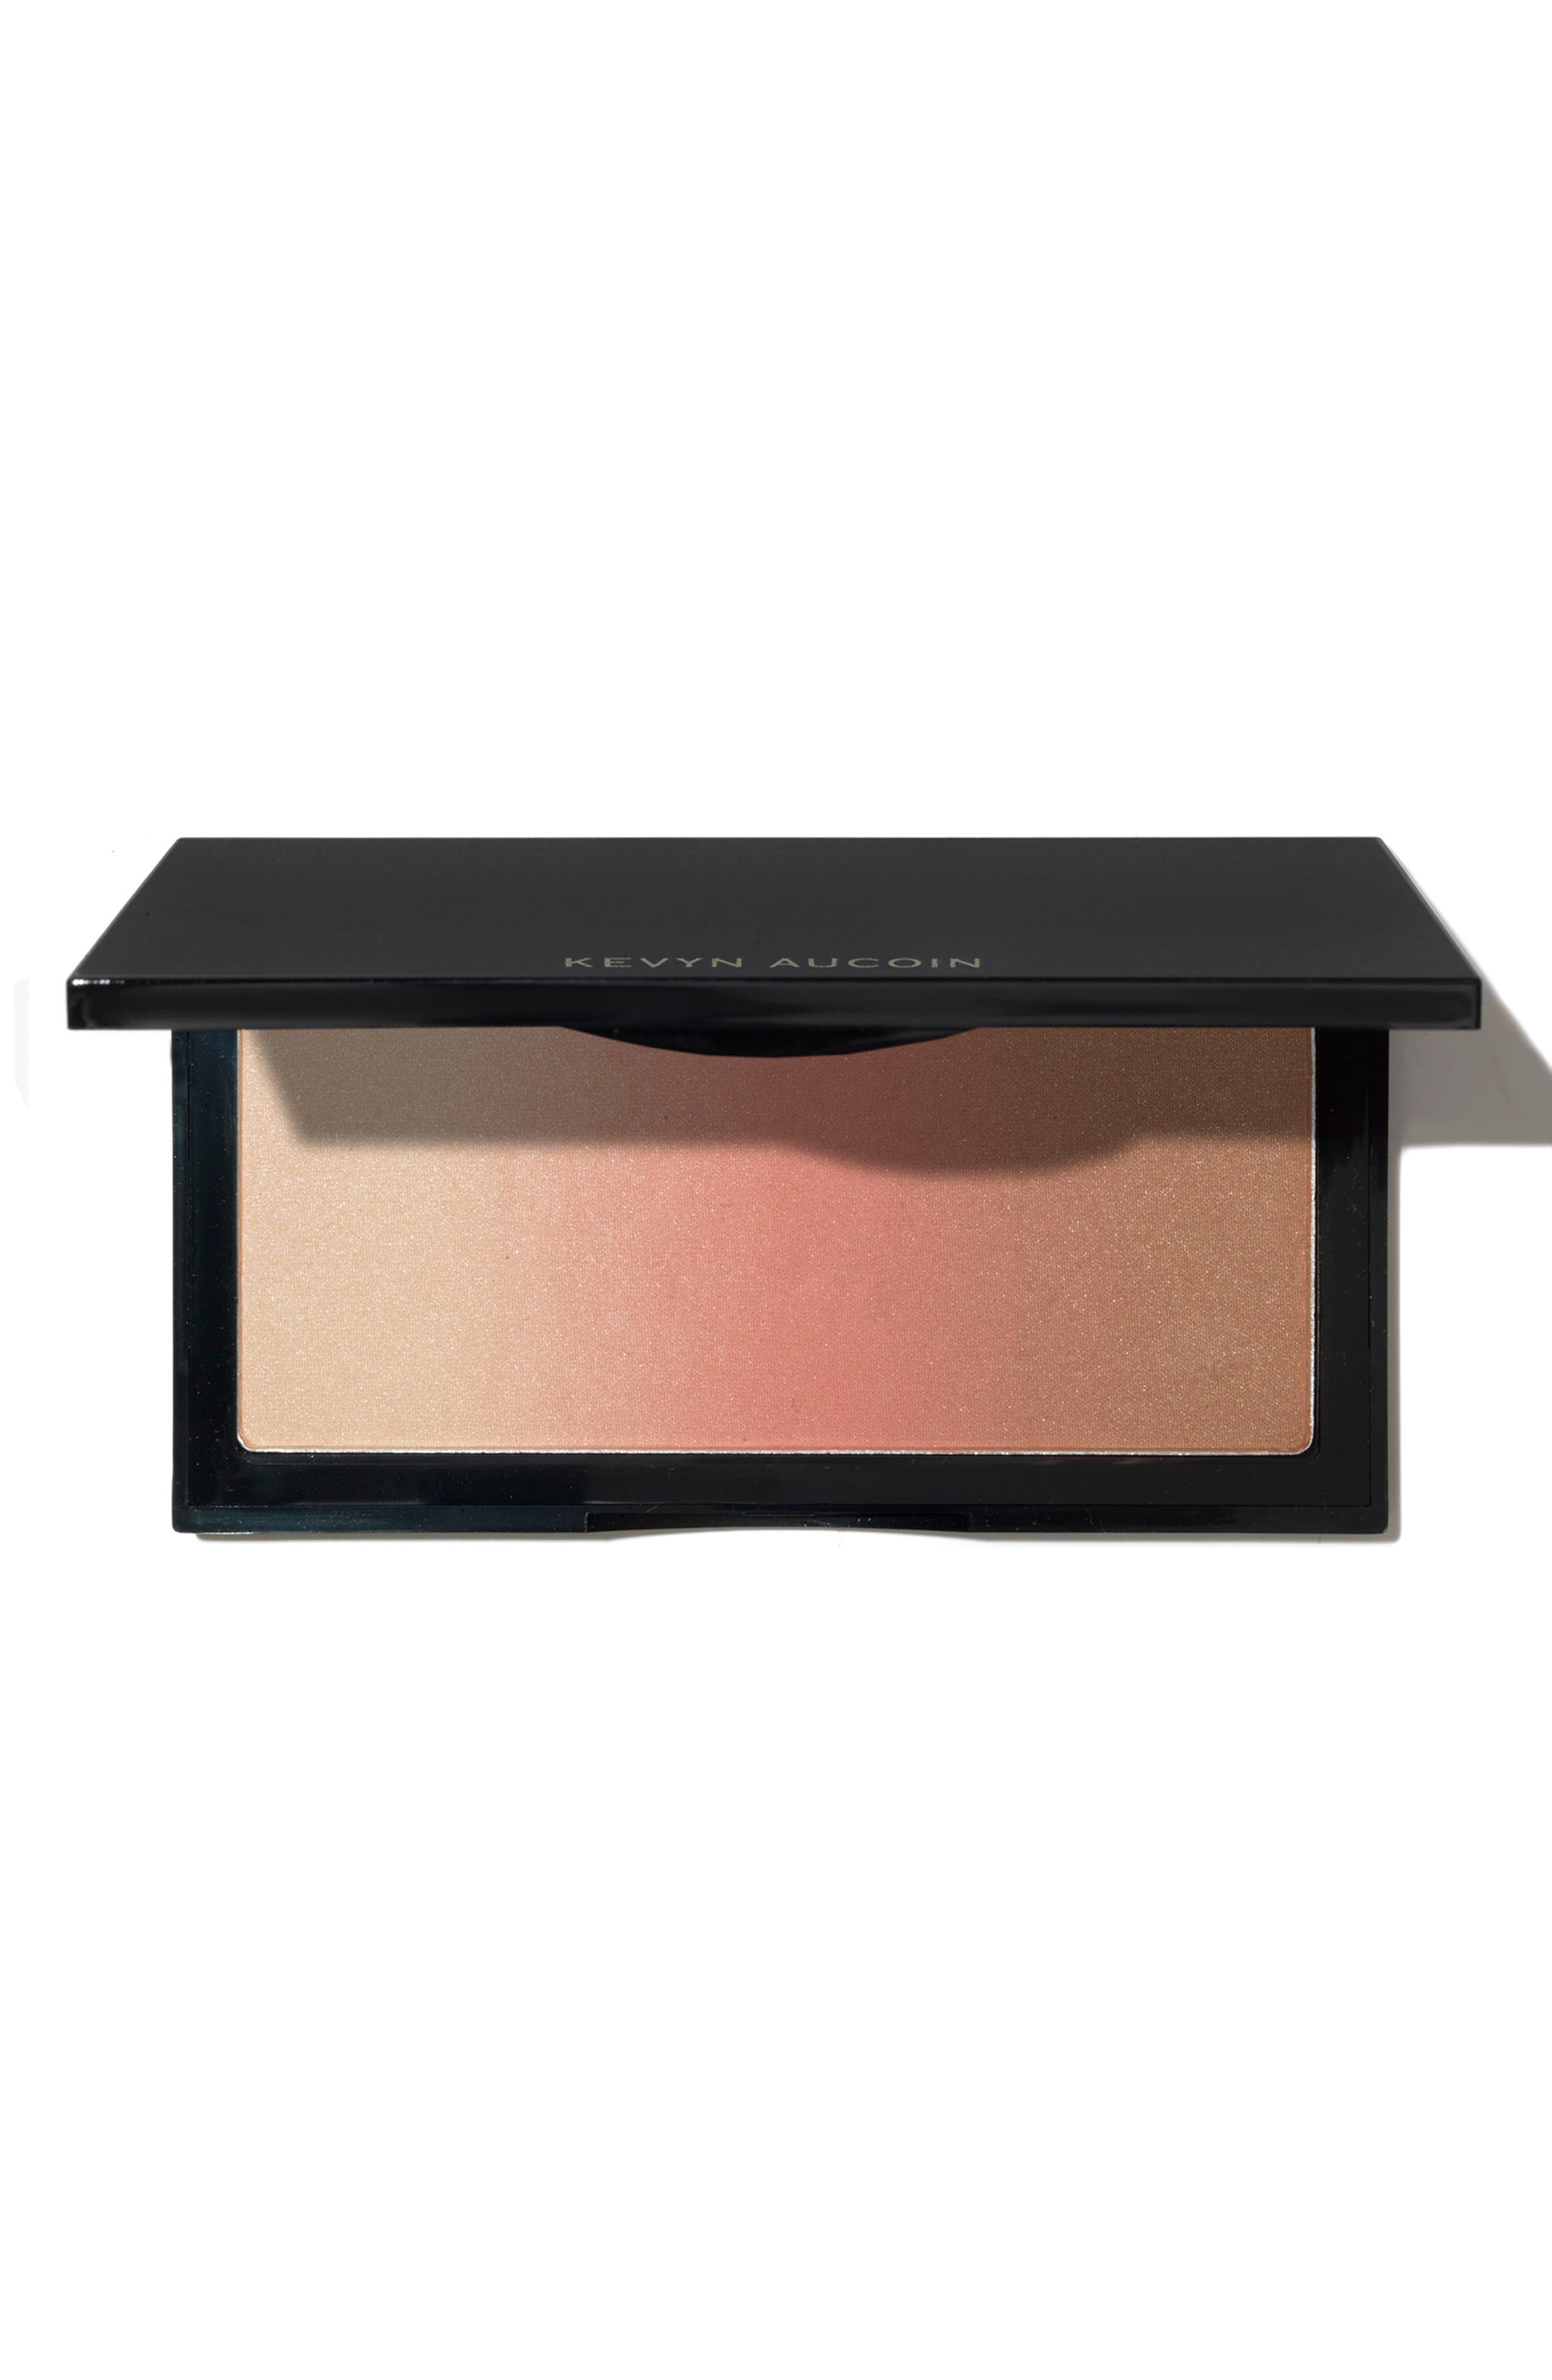 SPACE.NK.apothecary Kevyn Aucoin Beauty The Neo-Bronzer Face Palette,                         Main,                         color, CAPRI/ COOL PINK